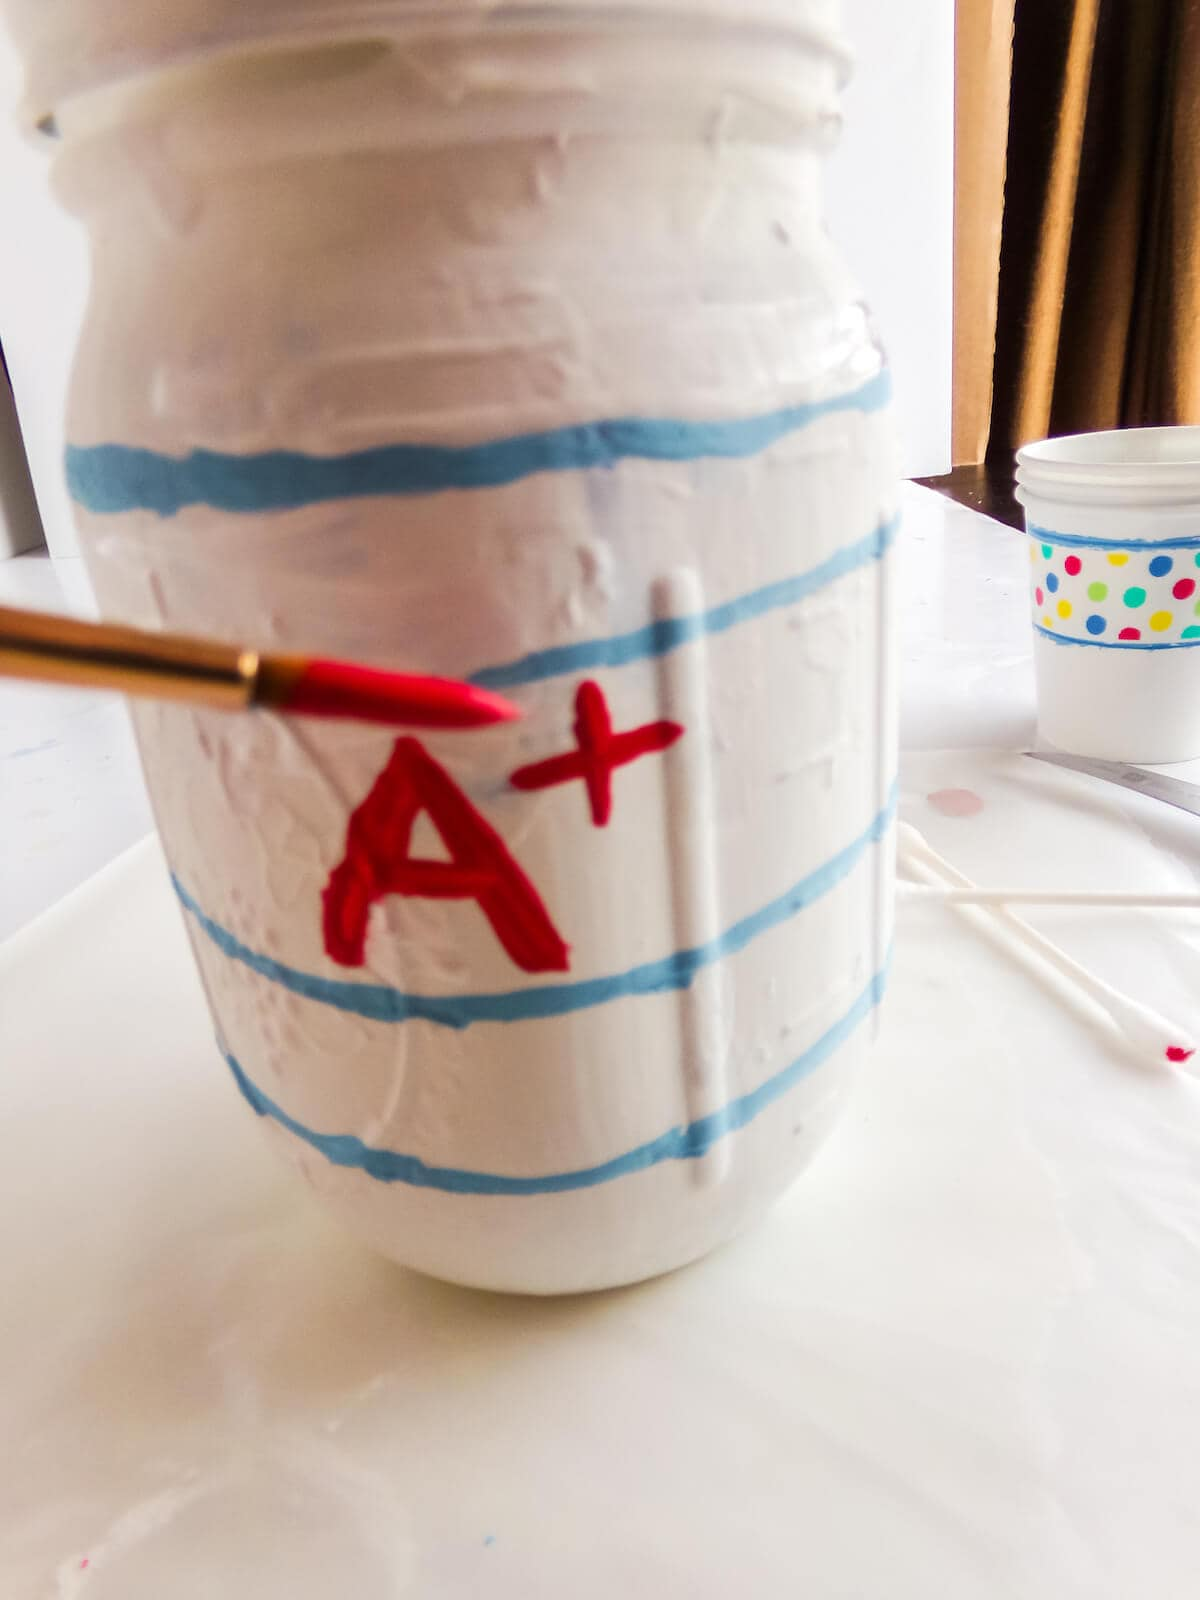 in-process step of painting a paper mason jar